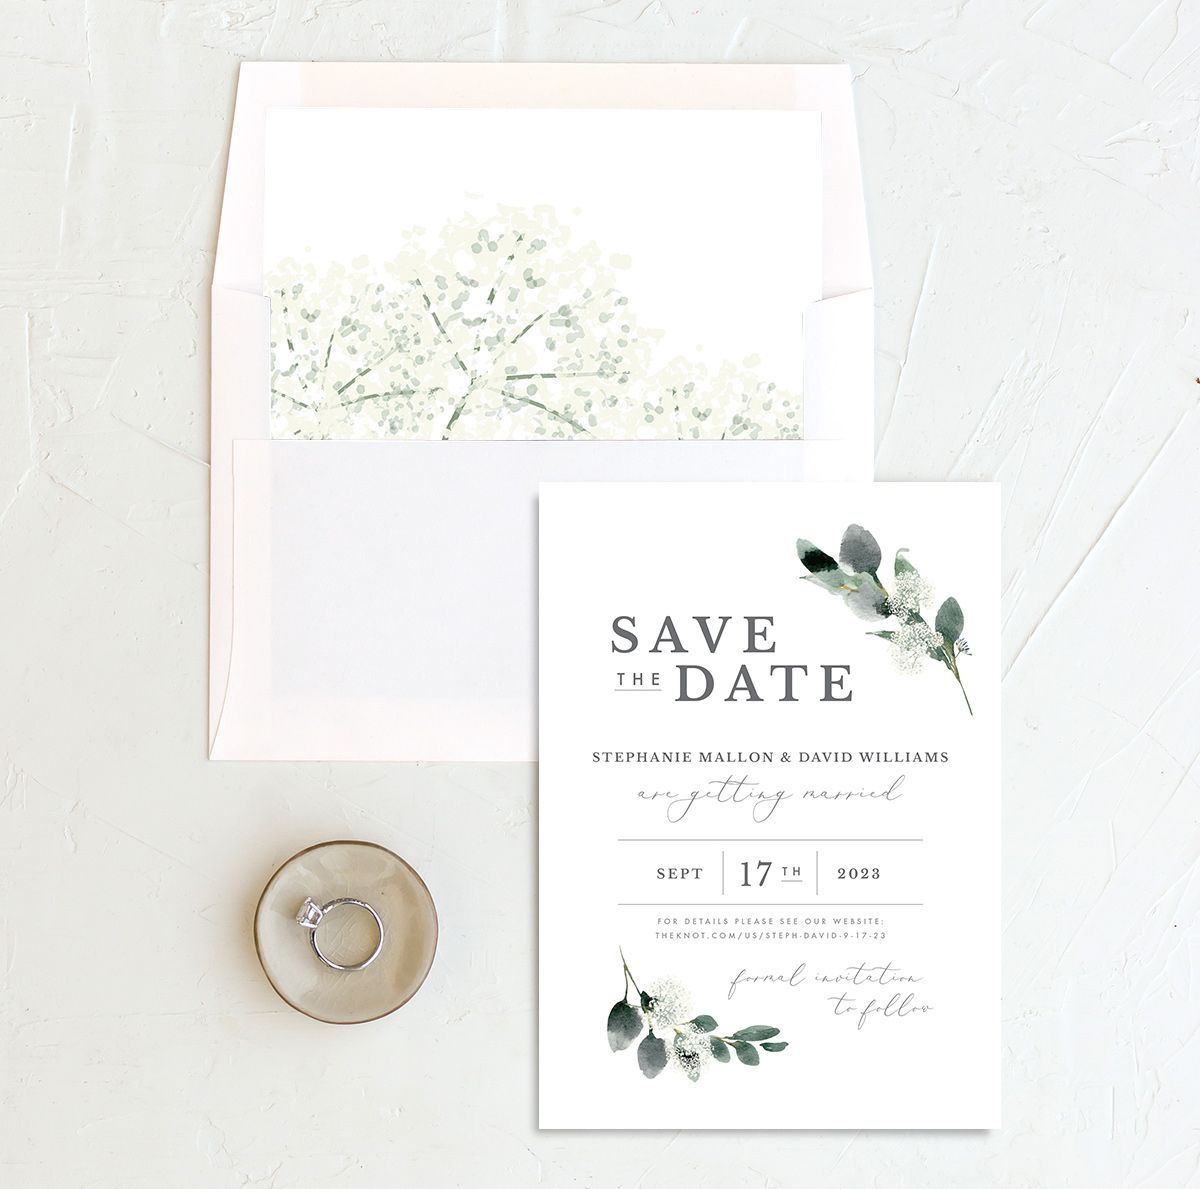 Elegant Greenery save the date with liner